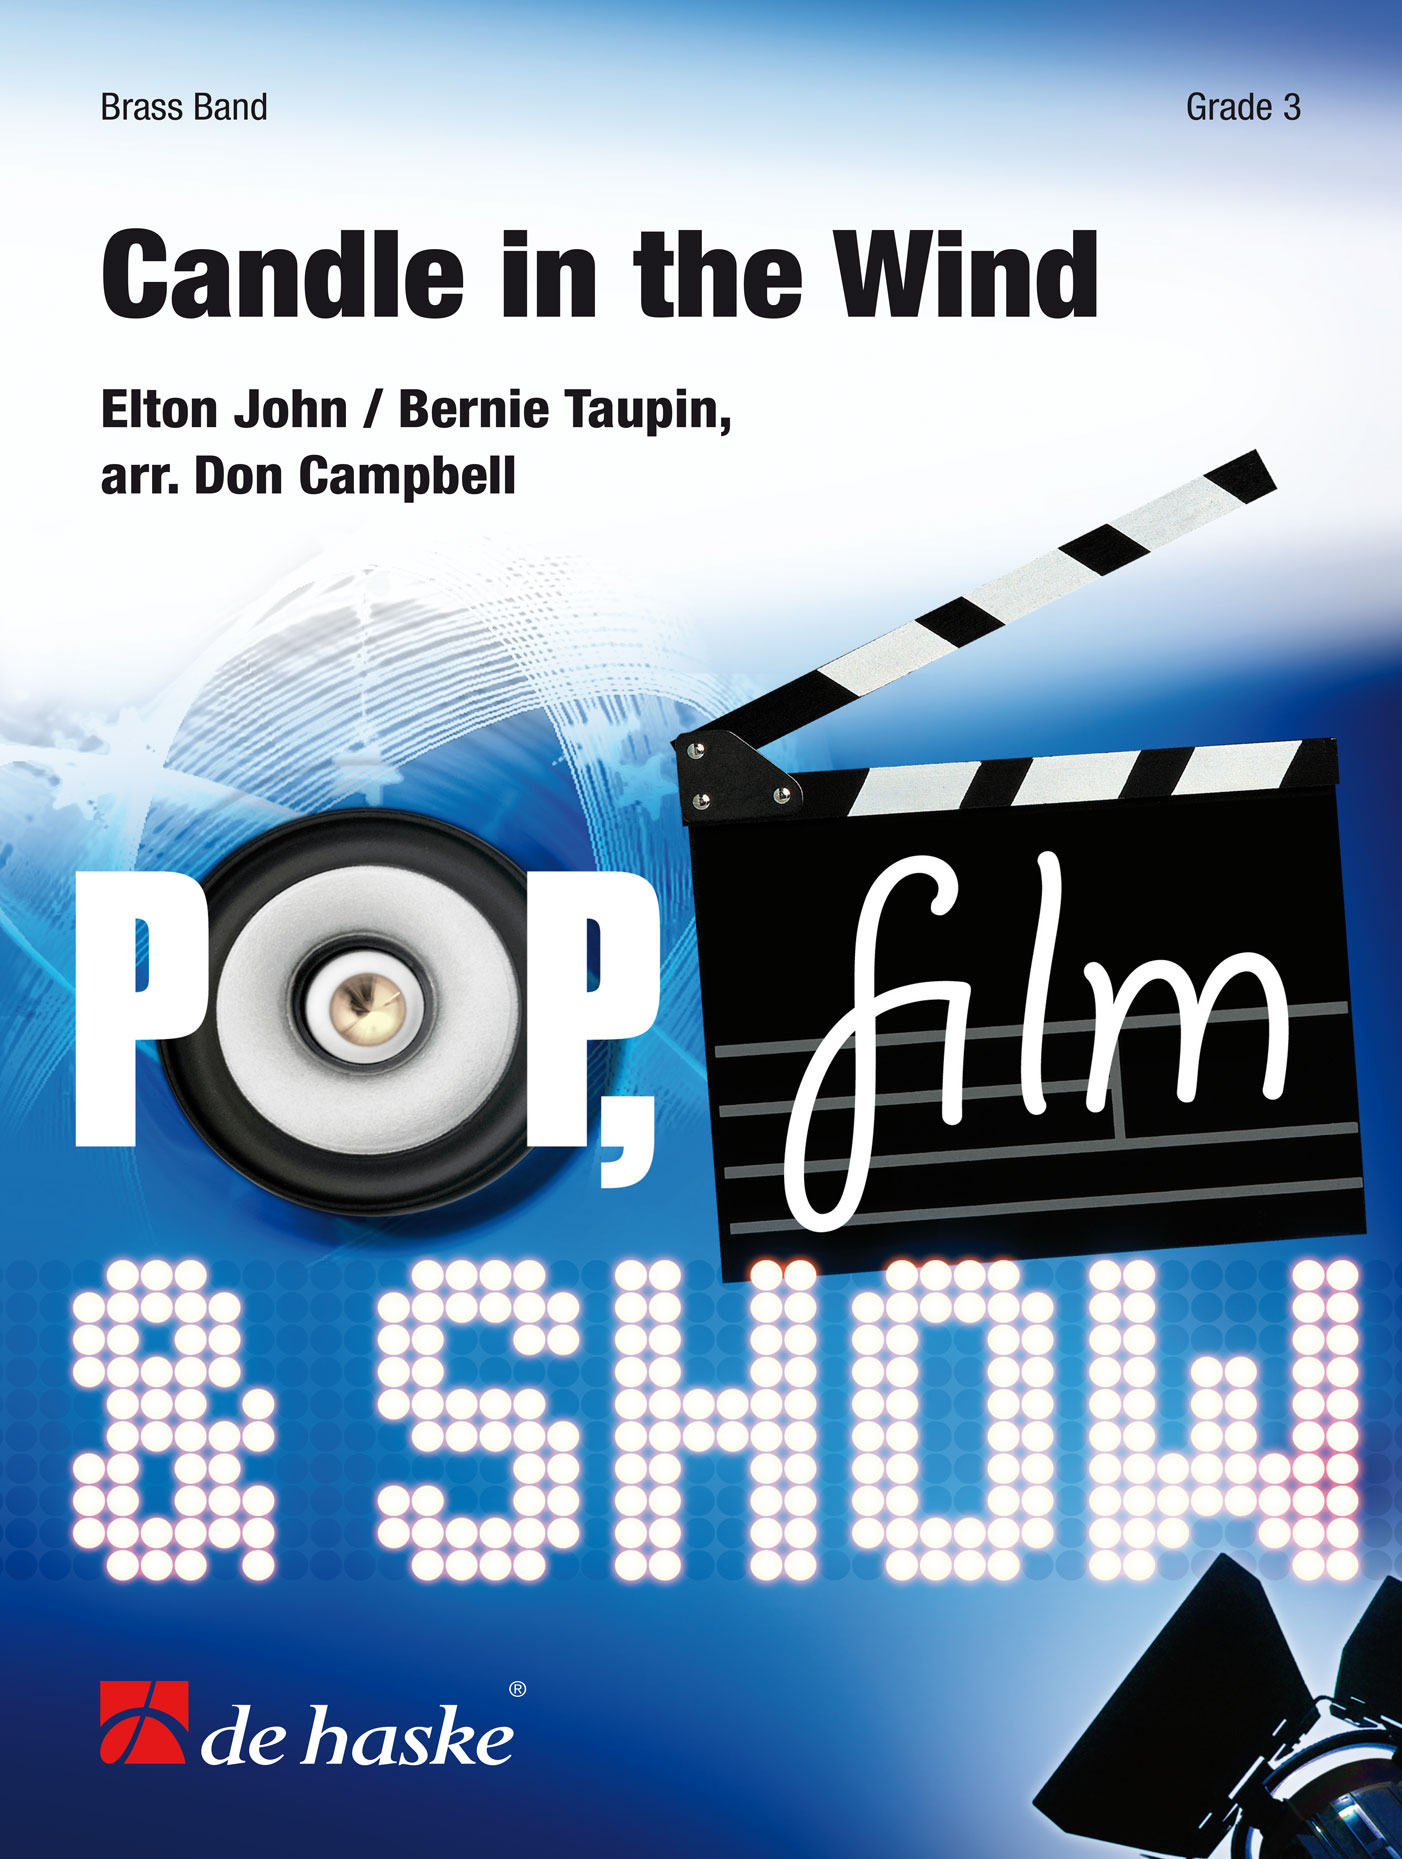 Elton John Bernie Taupin: Candle in the Wind: Brass Band: Score & Parts